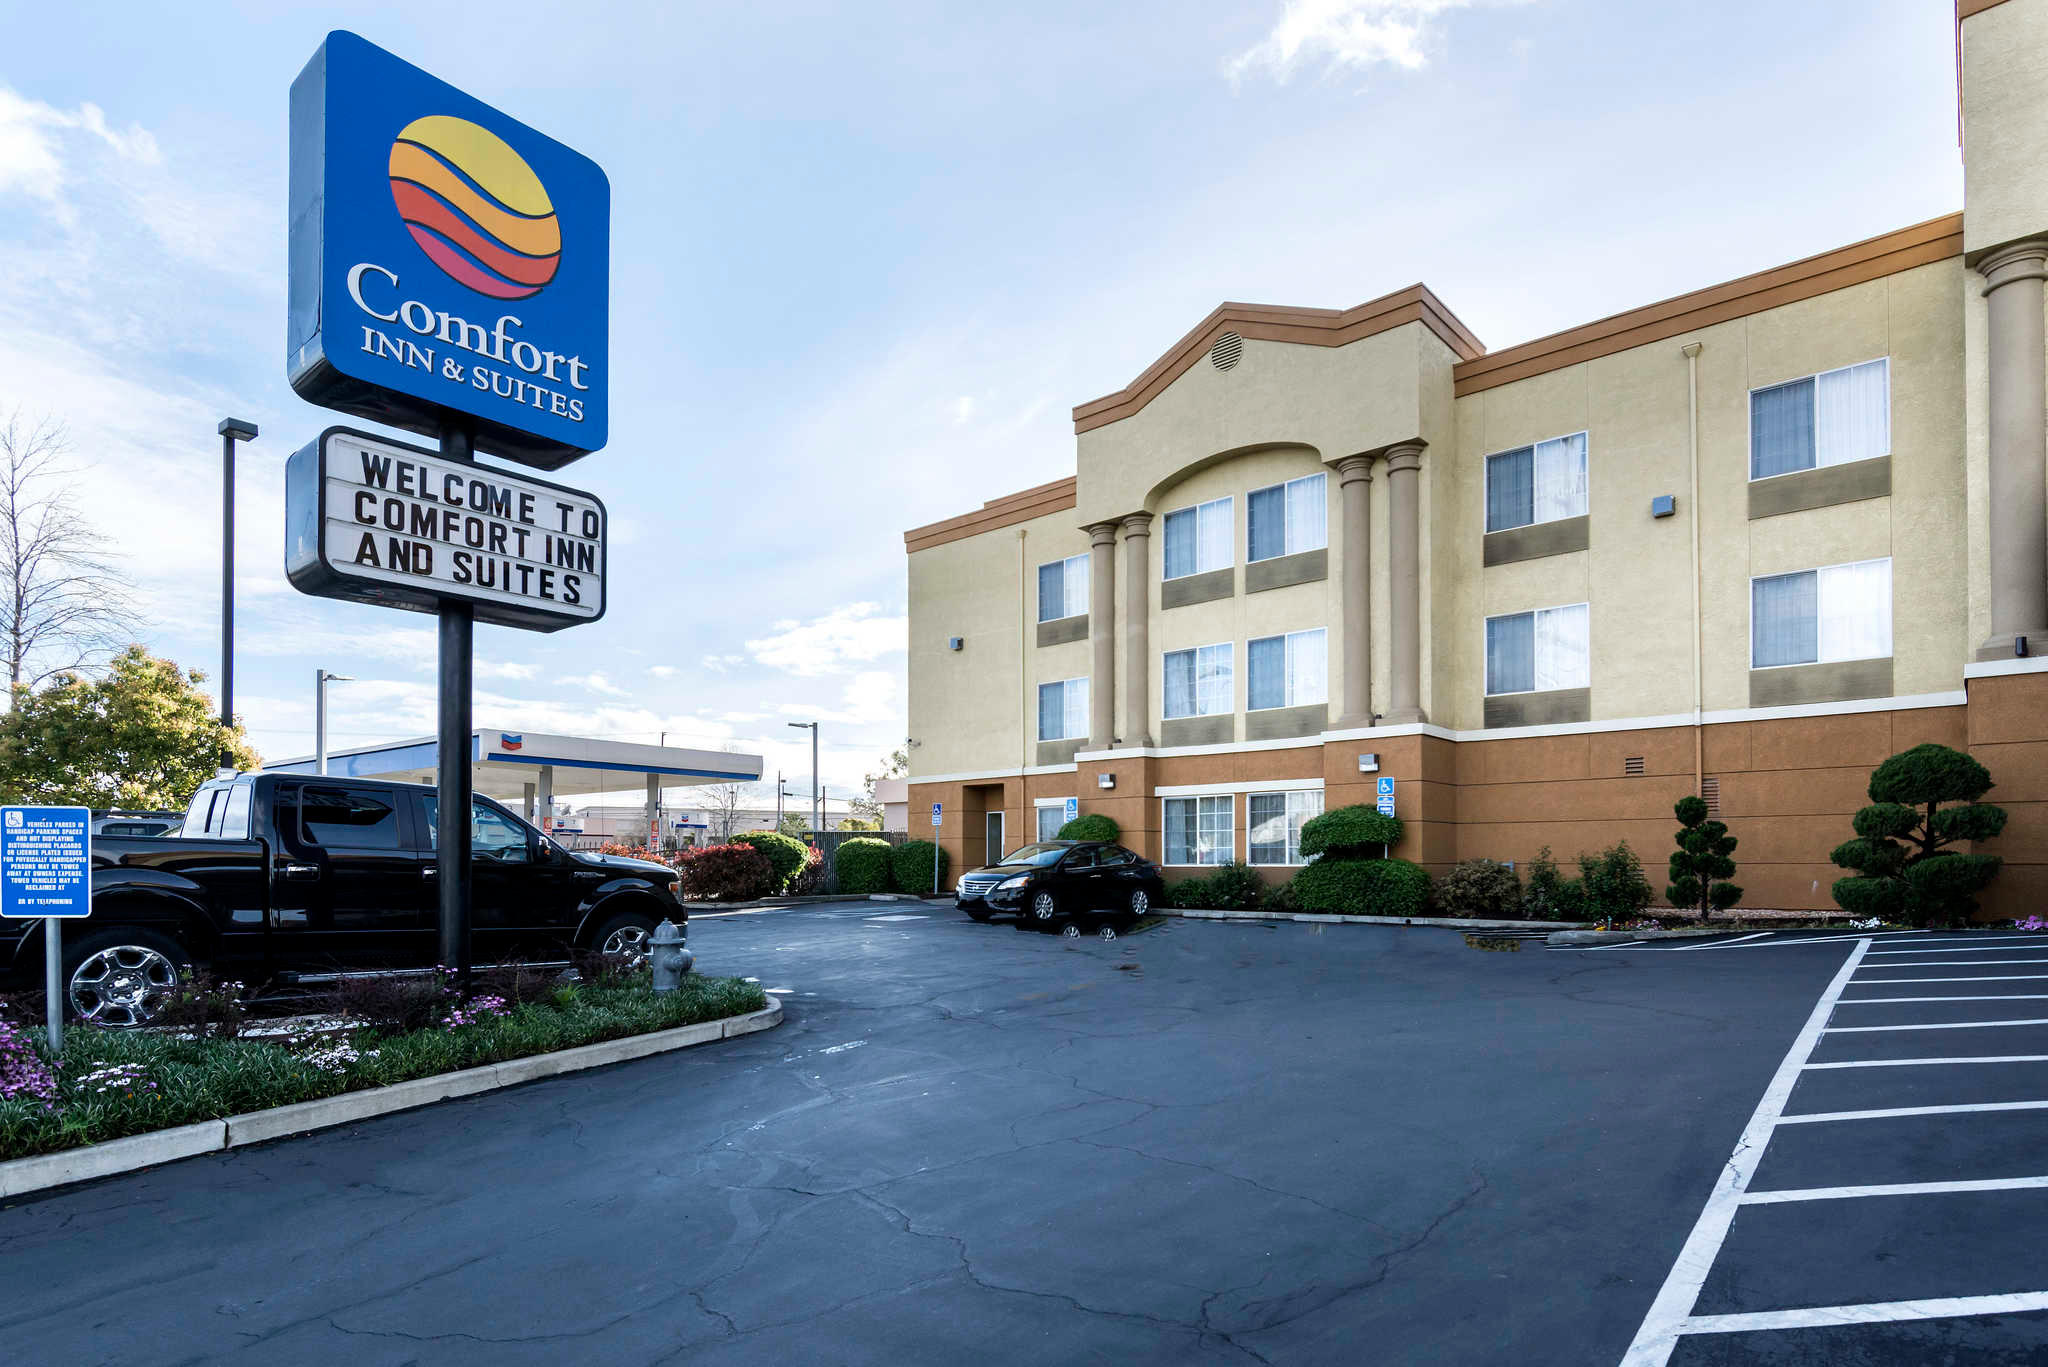 Comfort inn suites sacramento university area for Comfort inn suites pillows